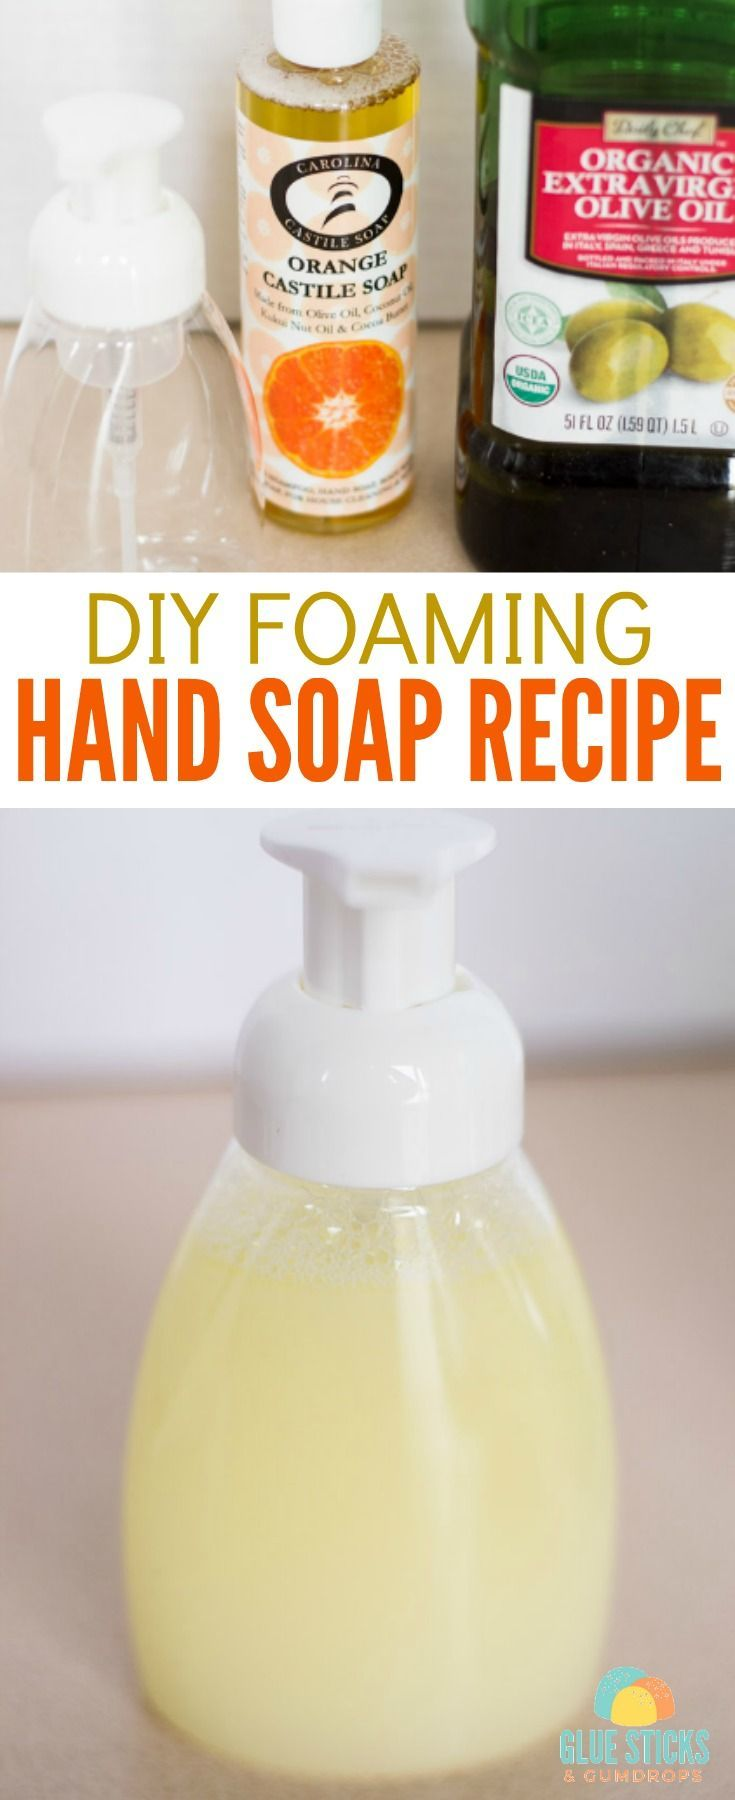 Using only 3 simple ingredients, you can make this DIY Foaming Hand Soap for a fraction of the cost you'd spend on other soaps, and it's made with organic ingredients you can feel good about.